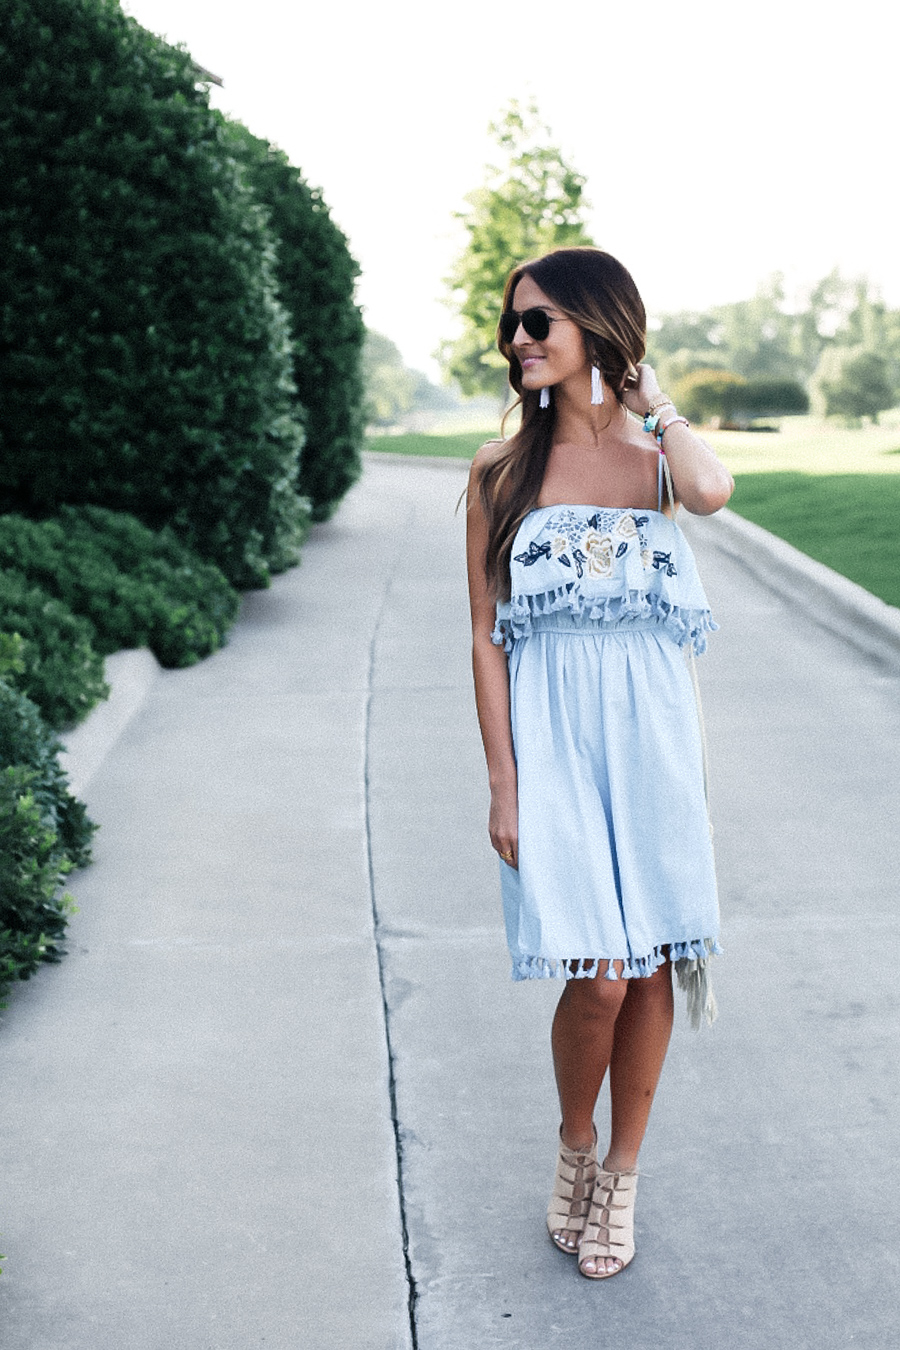 tassel dress + real talk about body image